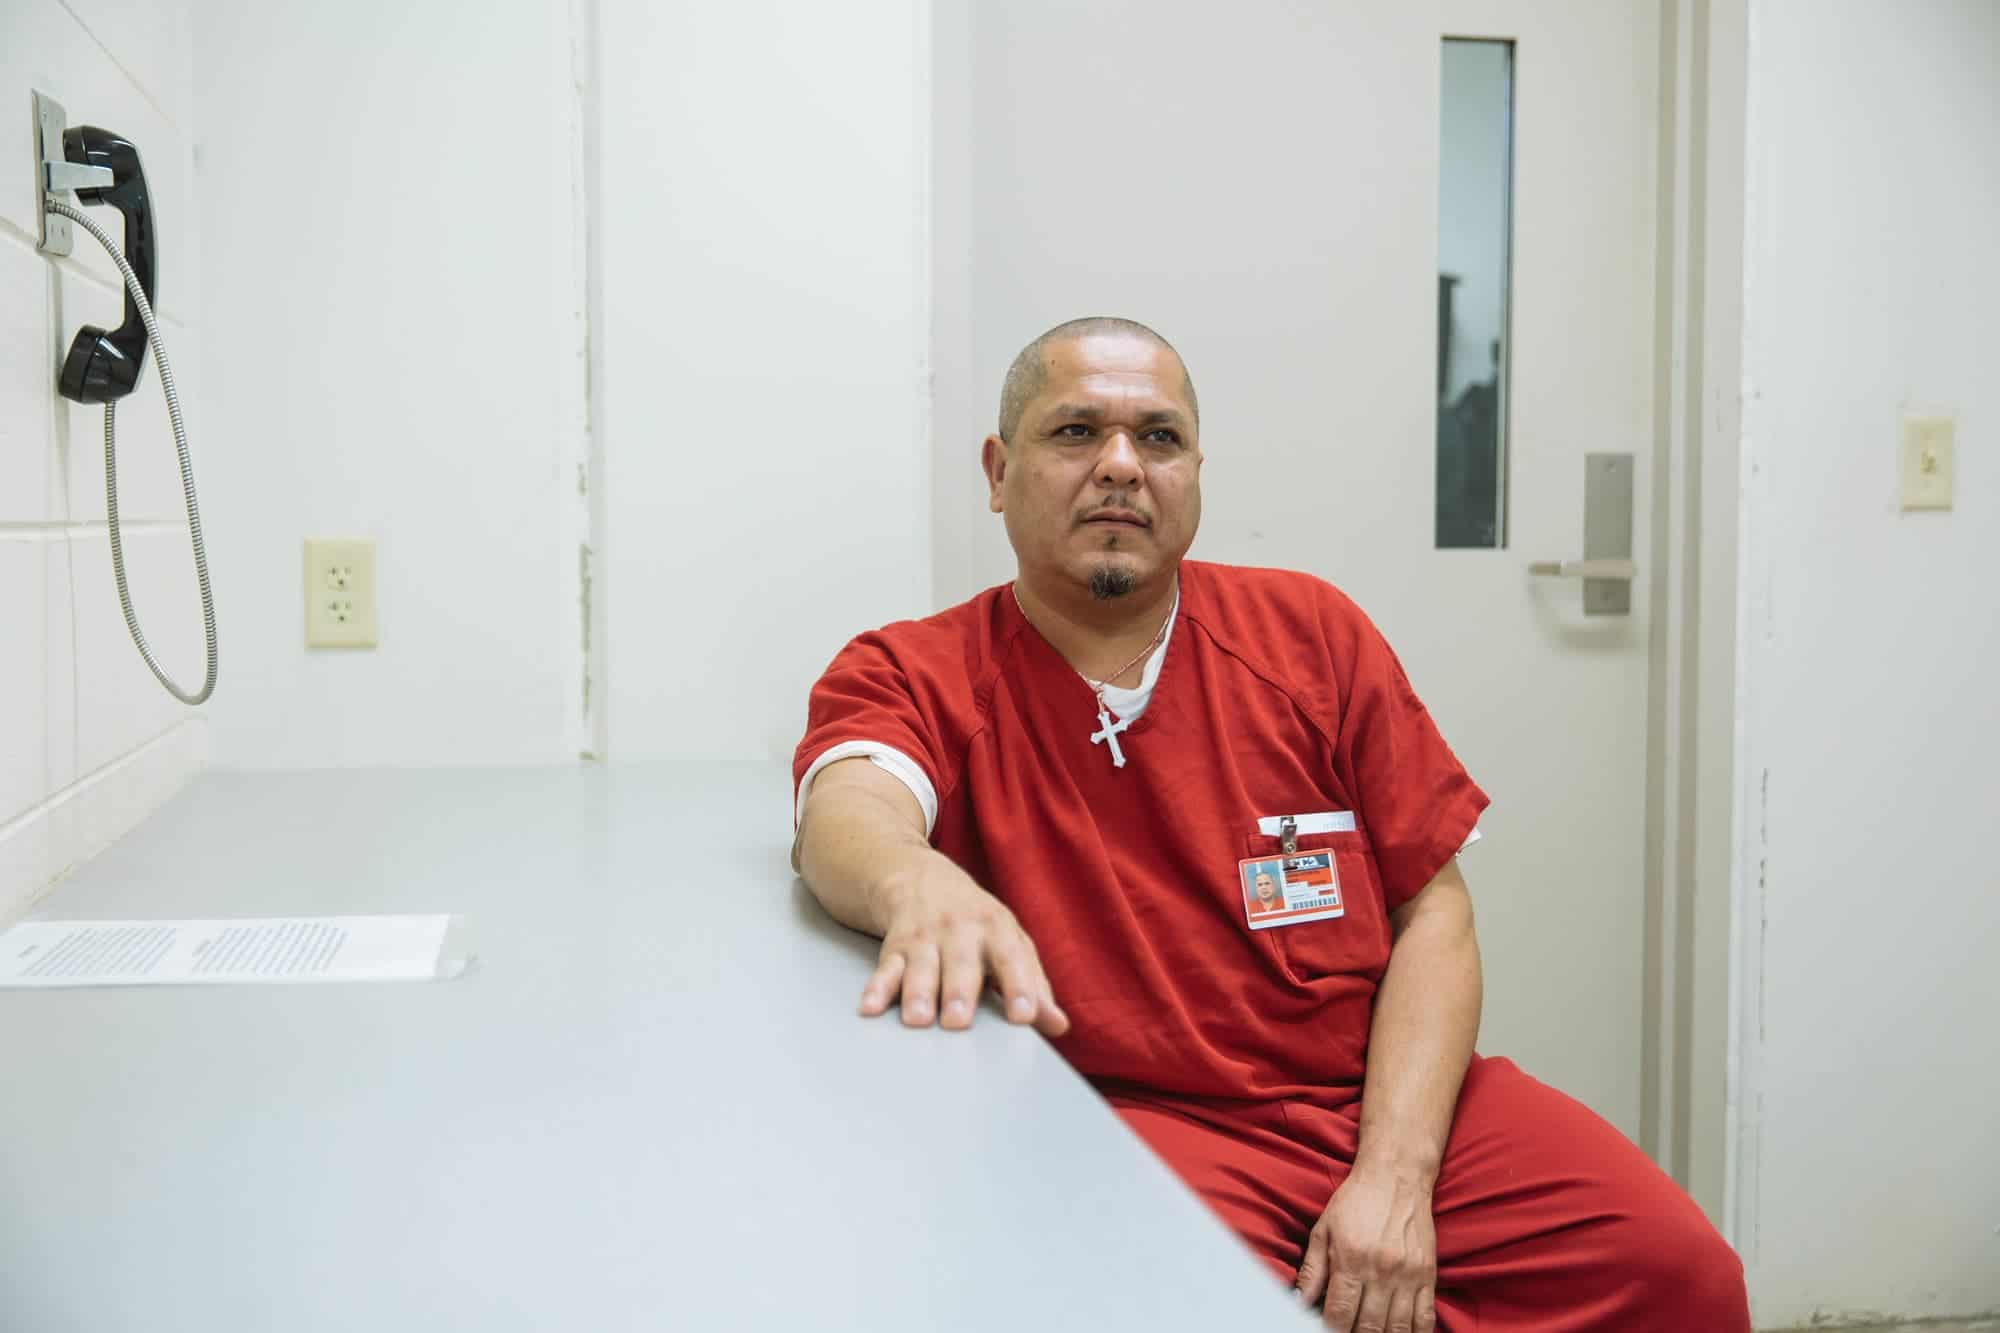 Omar Arana Romero came to the United States from Mexico in 1994. Turned in by his bosses at the chemical plant where he held a temp job, he has been at the Stewart Detention Center in Lumpkin, Ga., for over a year. Photo by Audra Melton for the Marshall Project